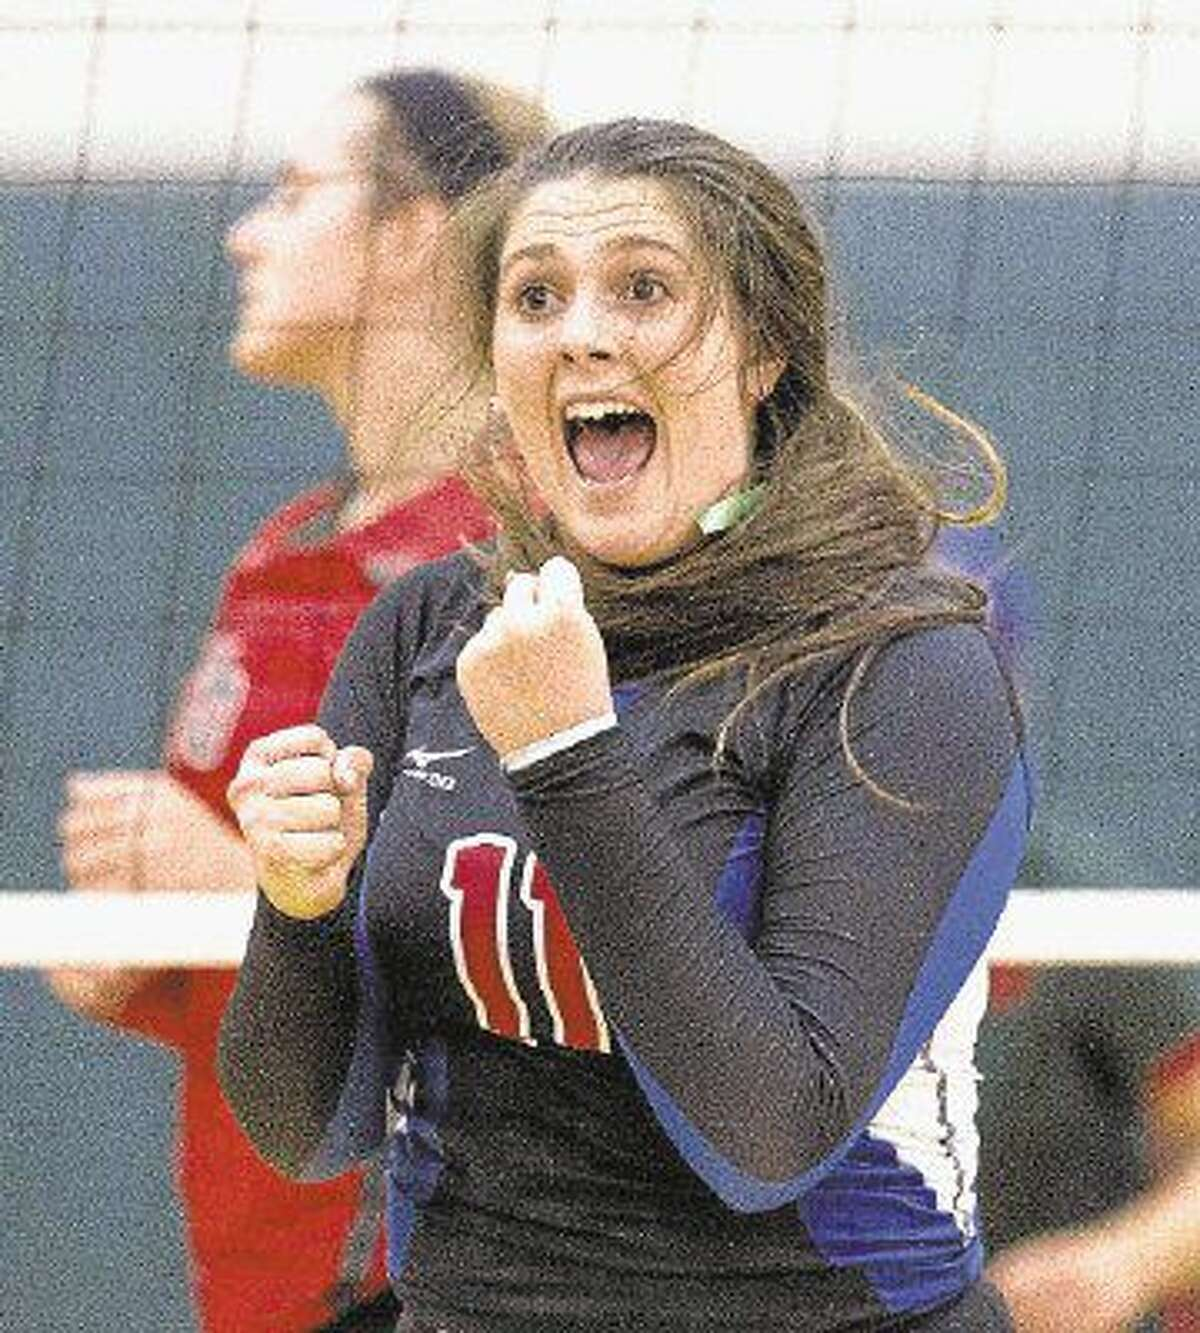 Oak Ridge's Carly Graham celebrates a block during a volleyball game. To view or purchase this photo and others like it, visit HCNpics.com.